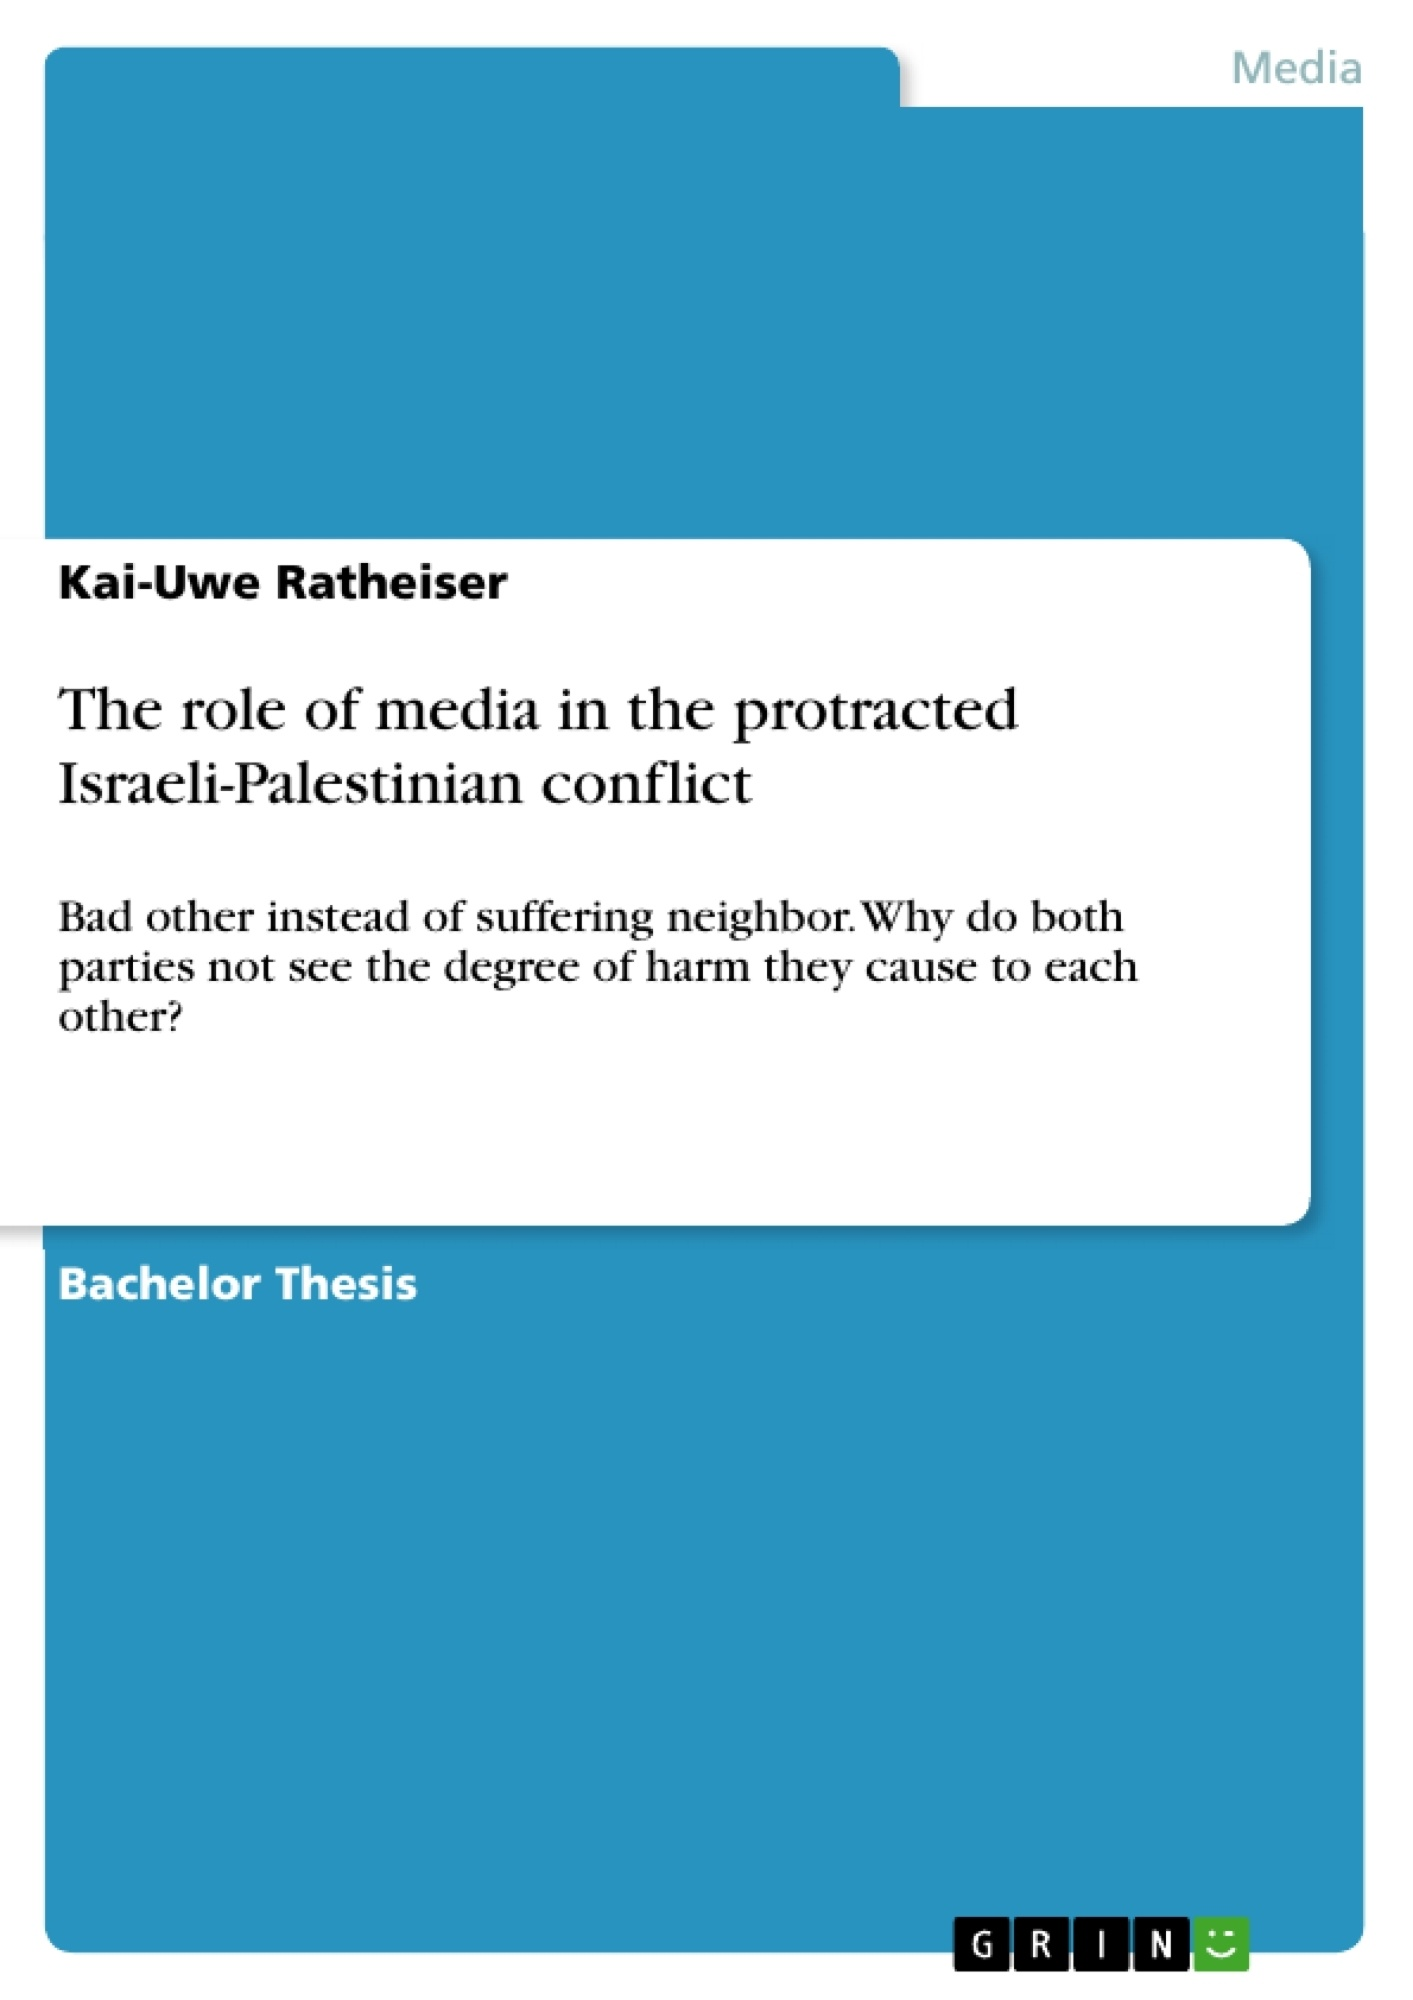 Title: The role of media in the protracted Israeli-Palestinian conflict